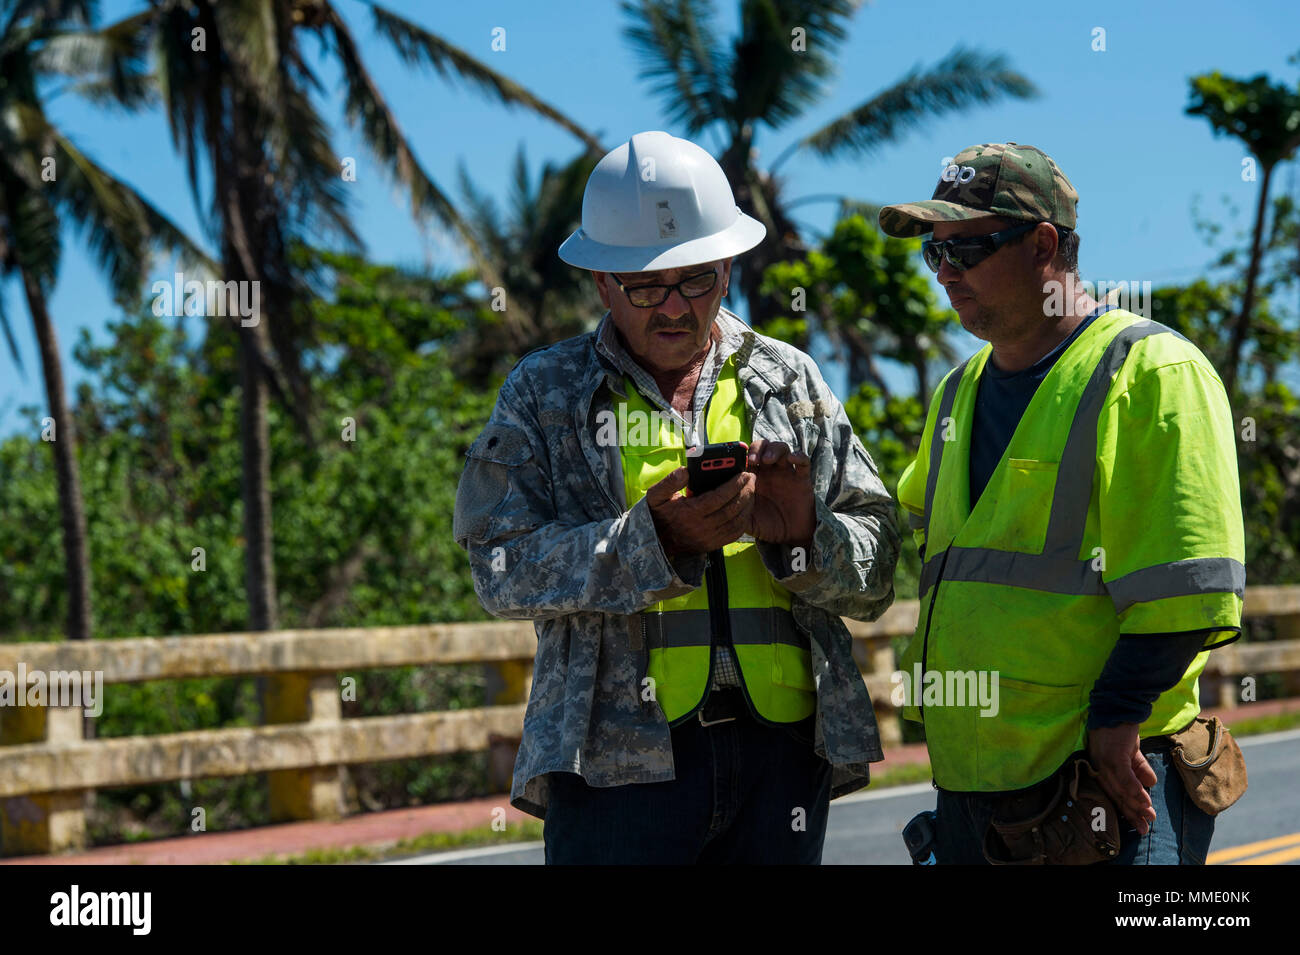 Employees of the Del Valle Group, S.P., take a break after working to repair a bridge damaged during Hurricane Maria in Toa Baja, Puerto Rico,, Oct. 24, 2017. (U.S. Air Force photo by Airman 1st Class Nicholas Dutton) - Stock Image